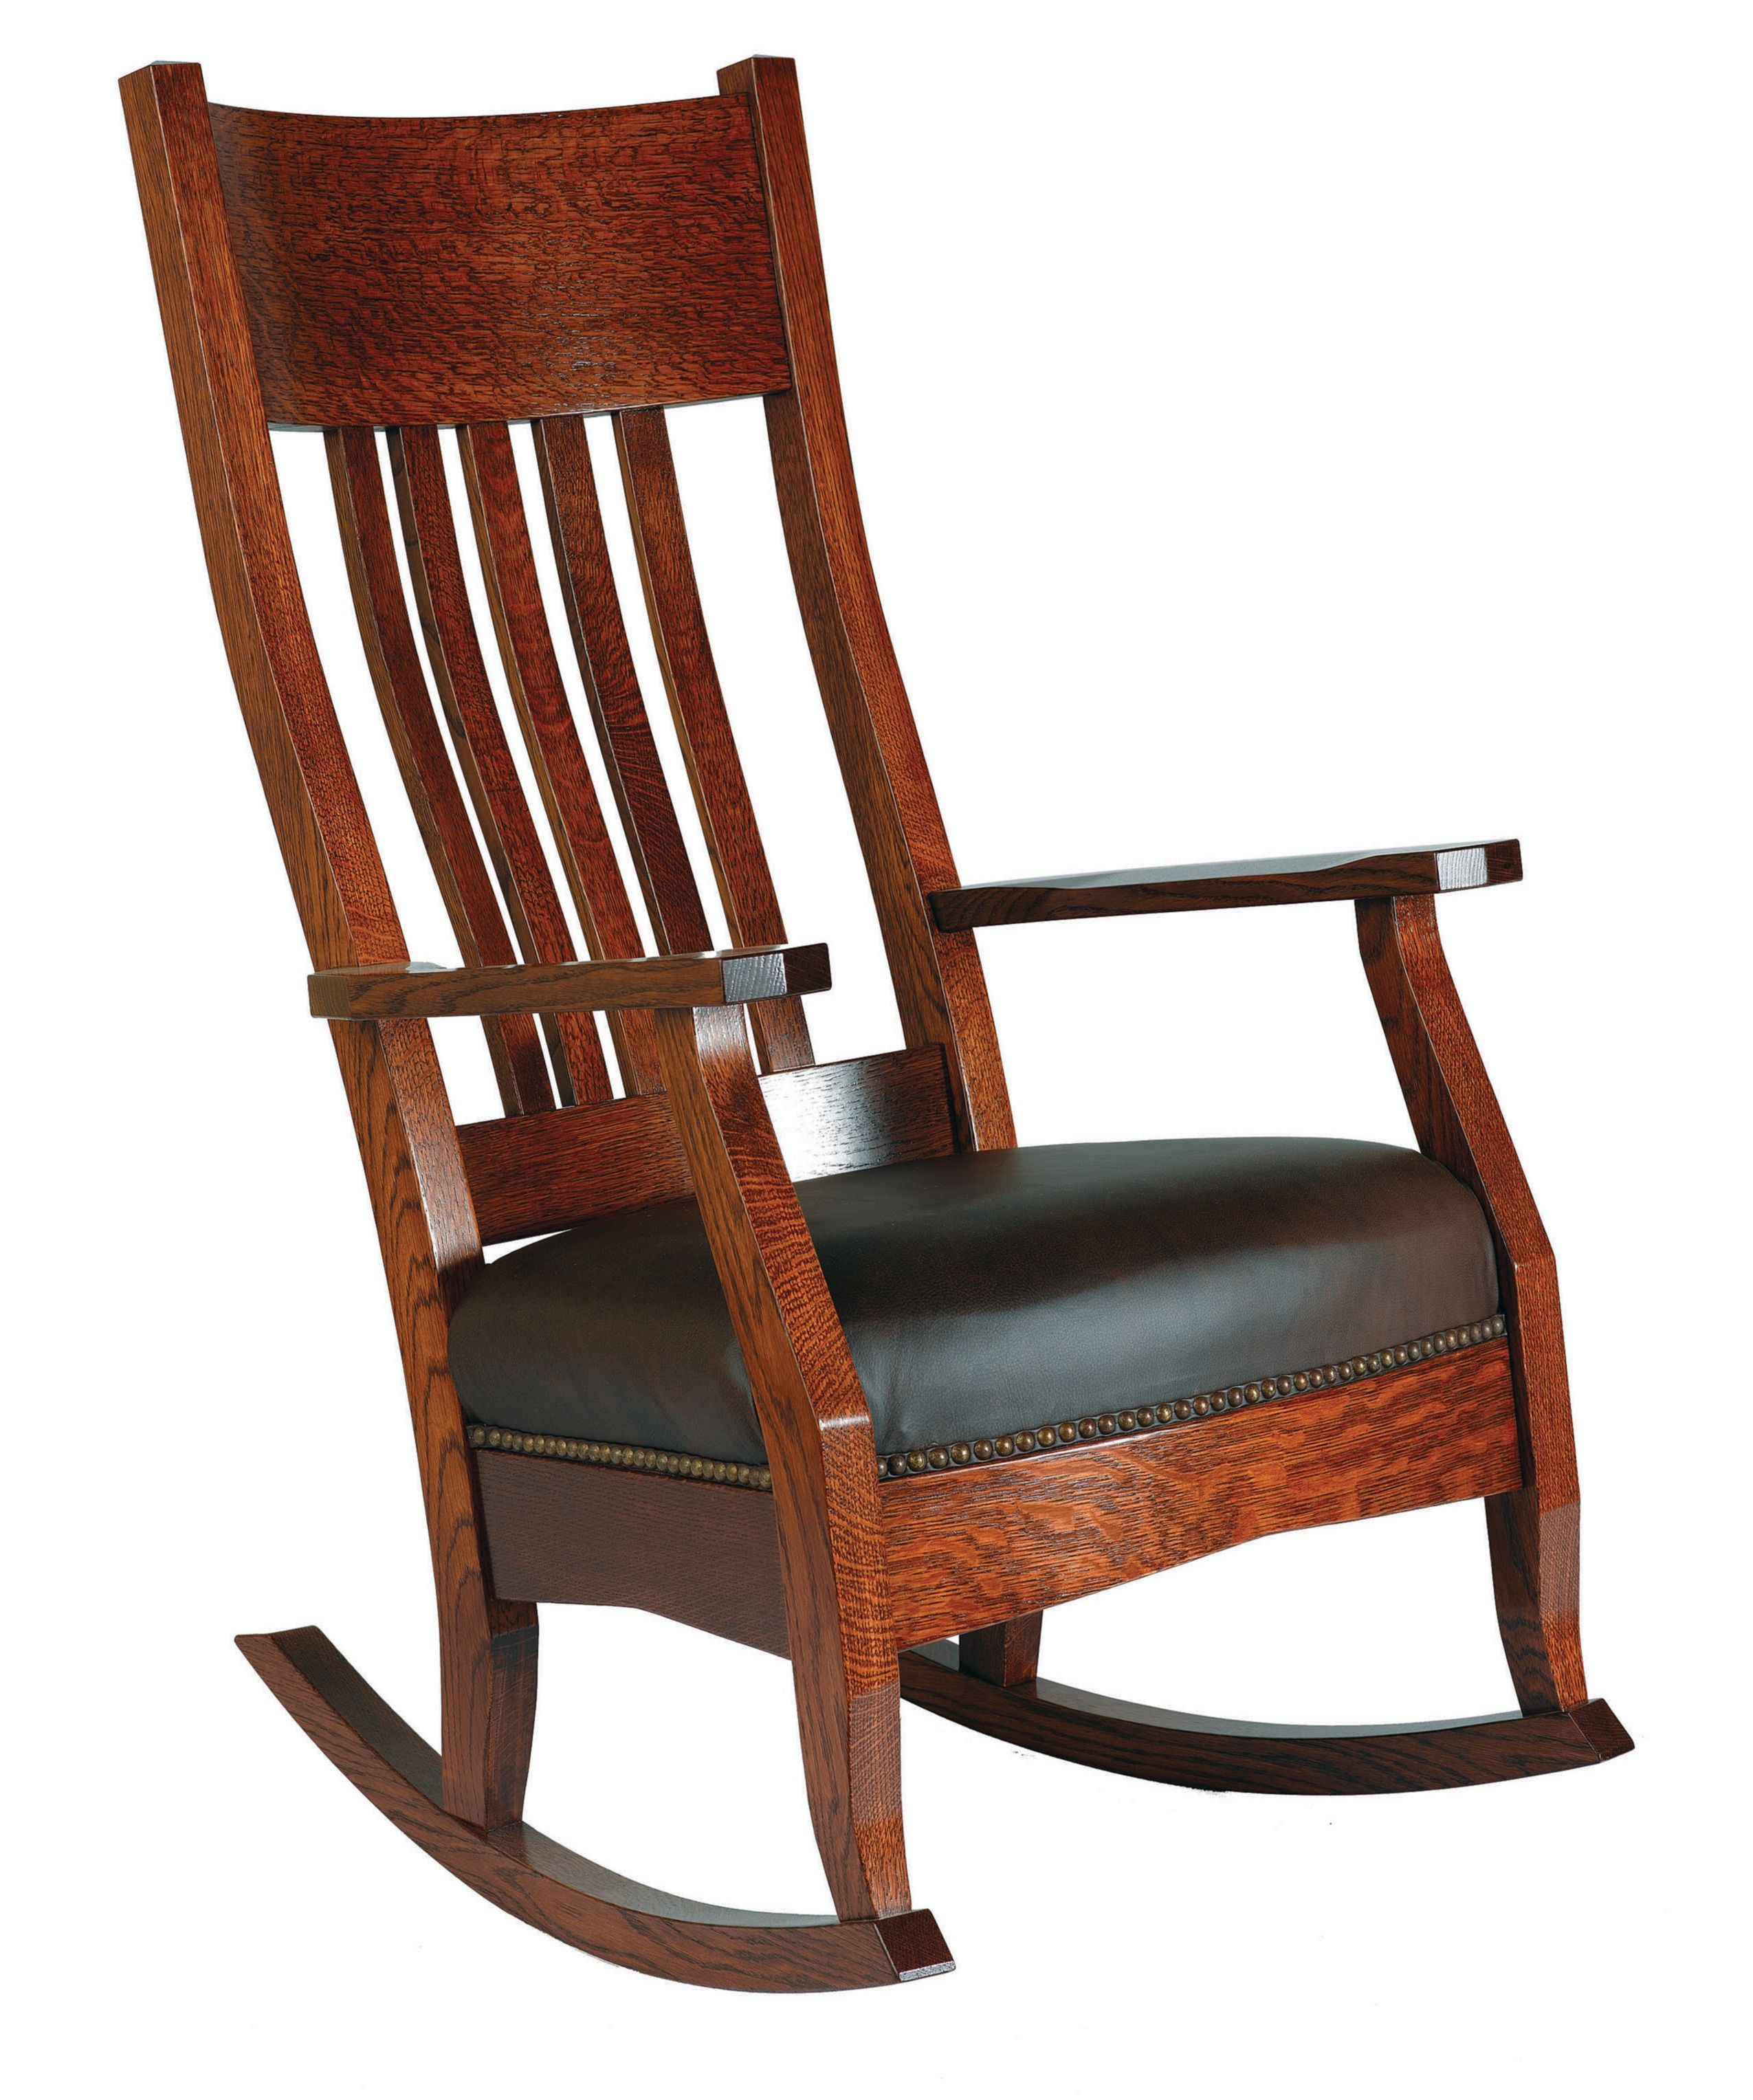 Delightful Amish Furniture | Solid Wood Mission Shaker Furniture | Chicago Area,  Illinois